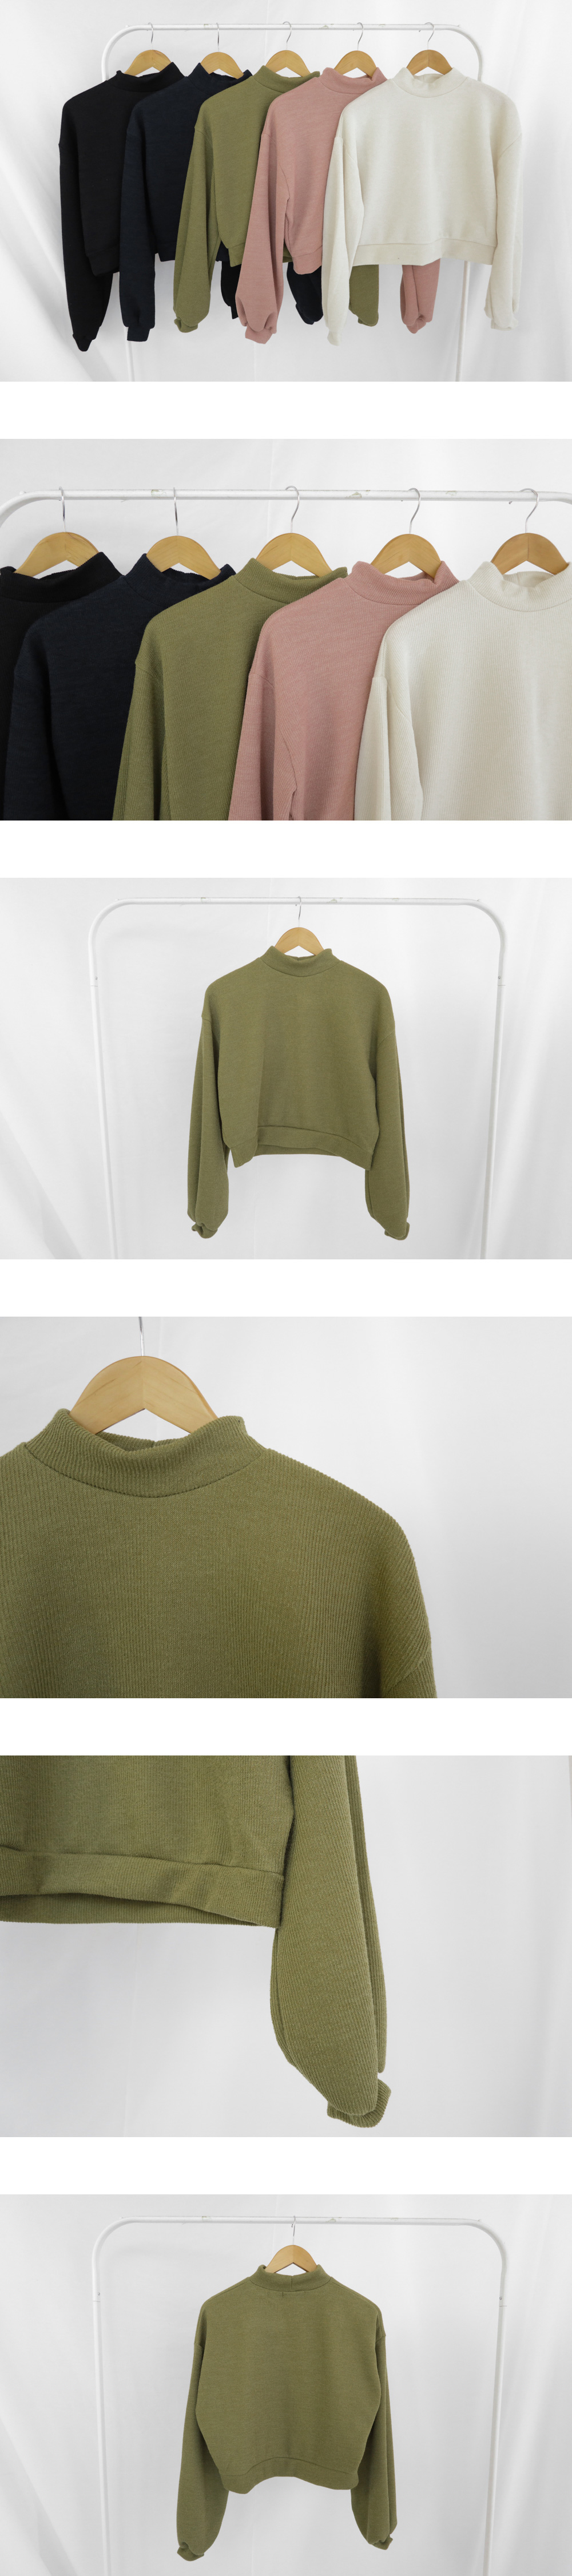 Sha Ribbed Balloon Turtleneck Sweatshirt